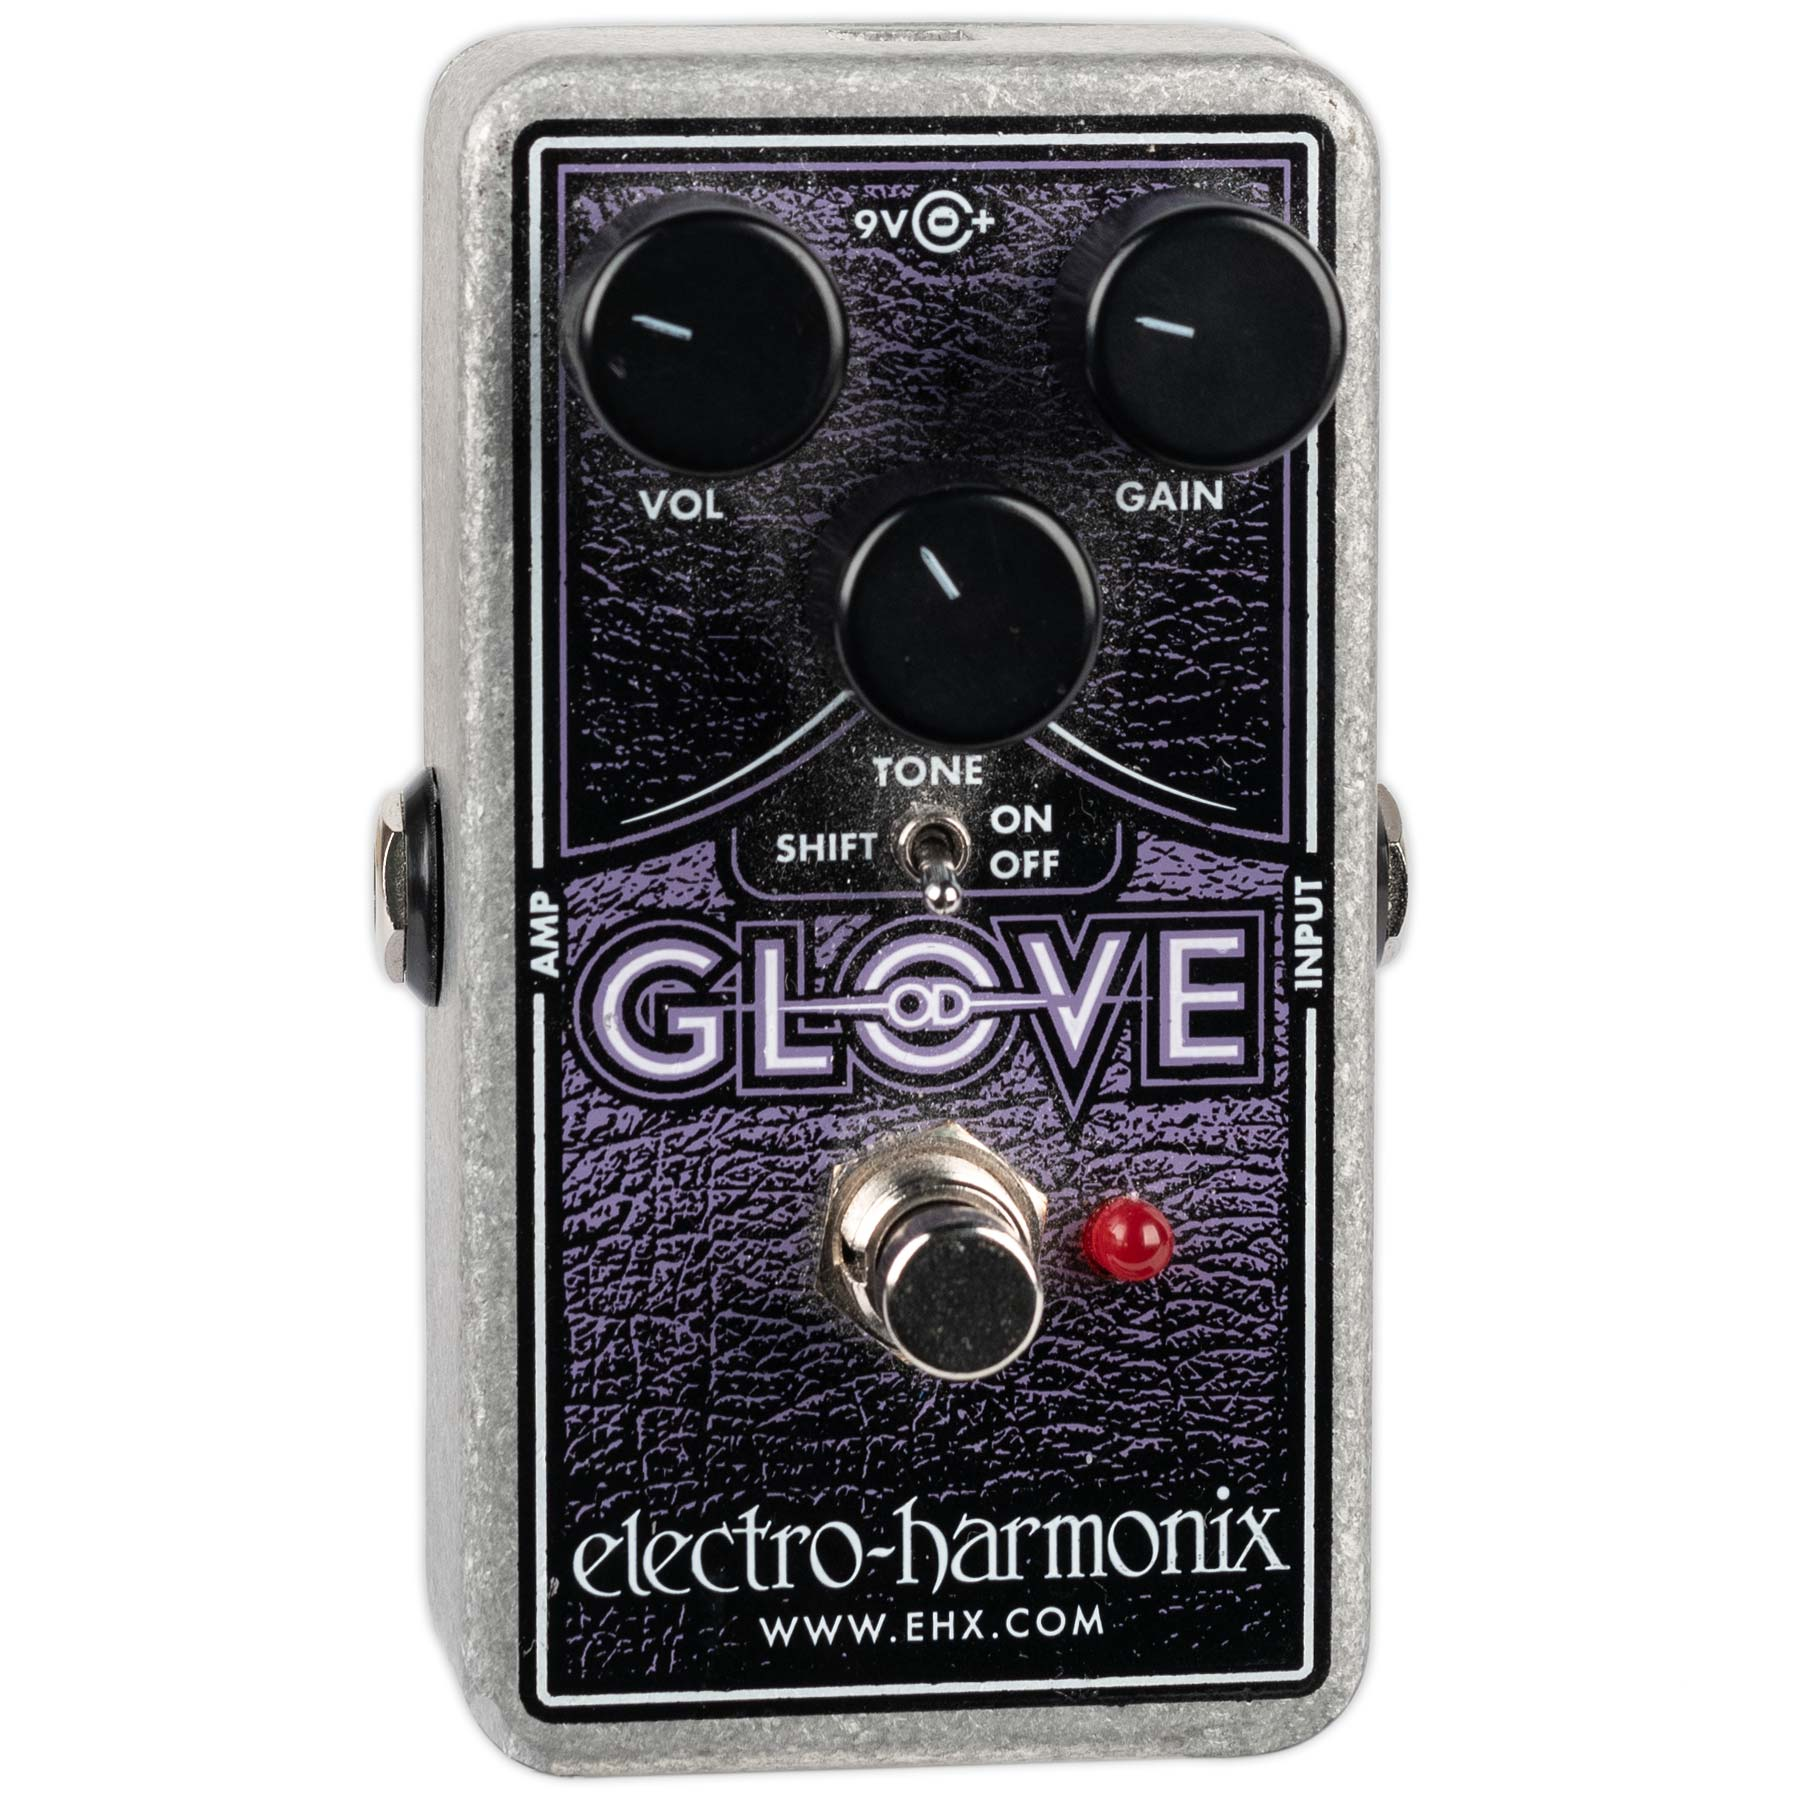 ELECTRO-HARMONIX GLOVE OD WITH BOX